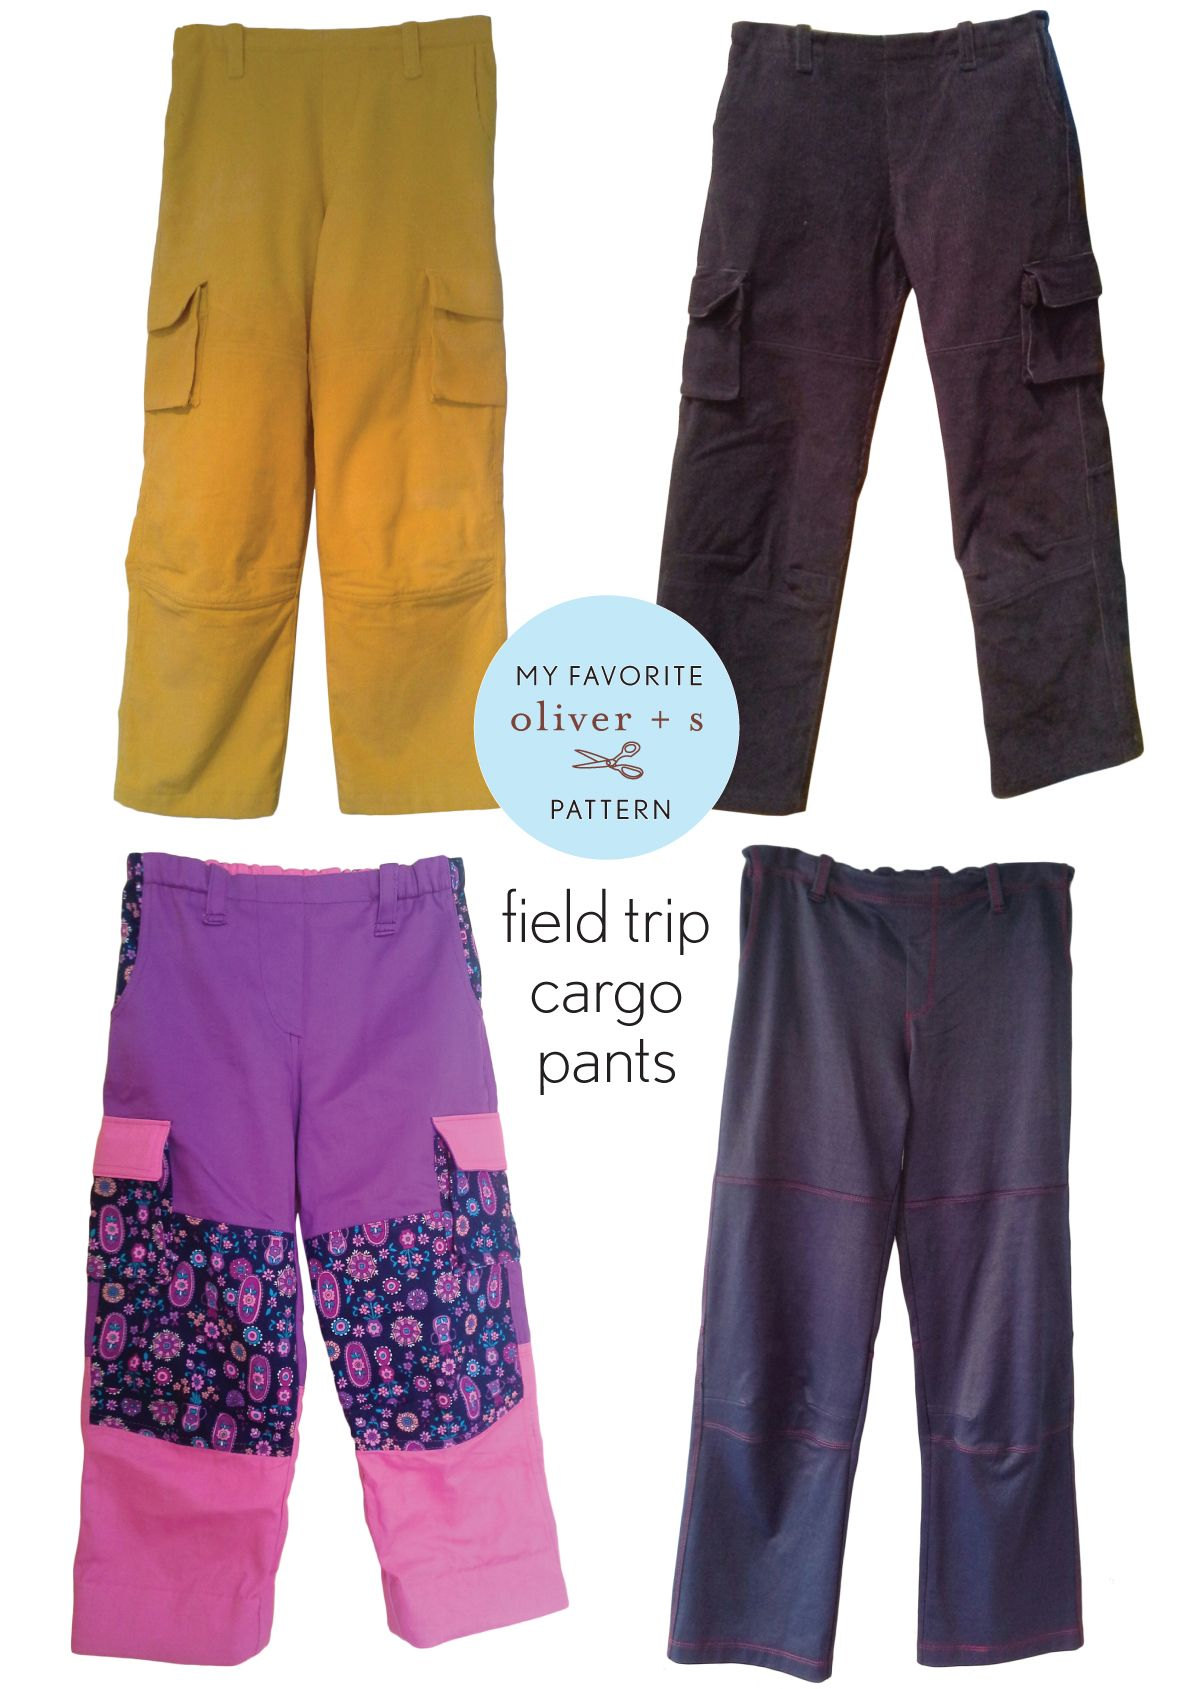 Heidi is sharing a bit about her favorite Oliver + S pattern, the Field Trip Cargo Pants.